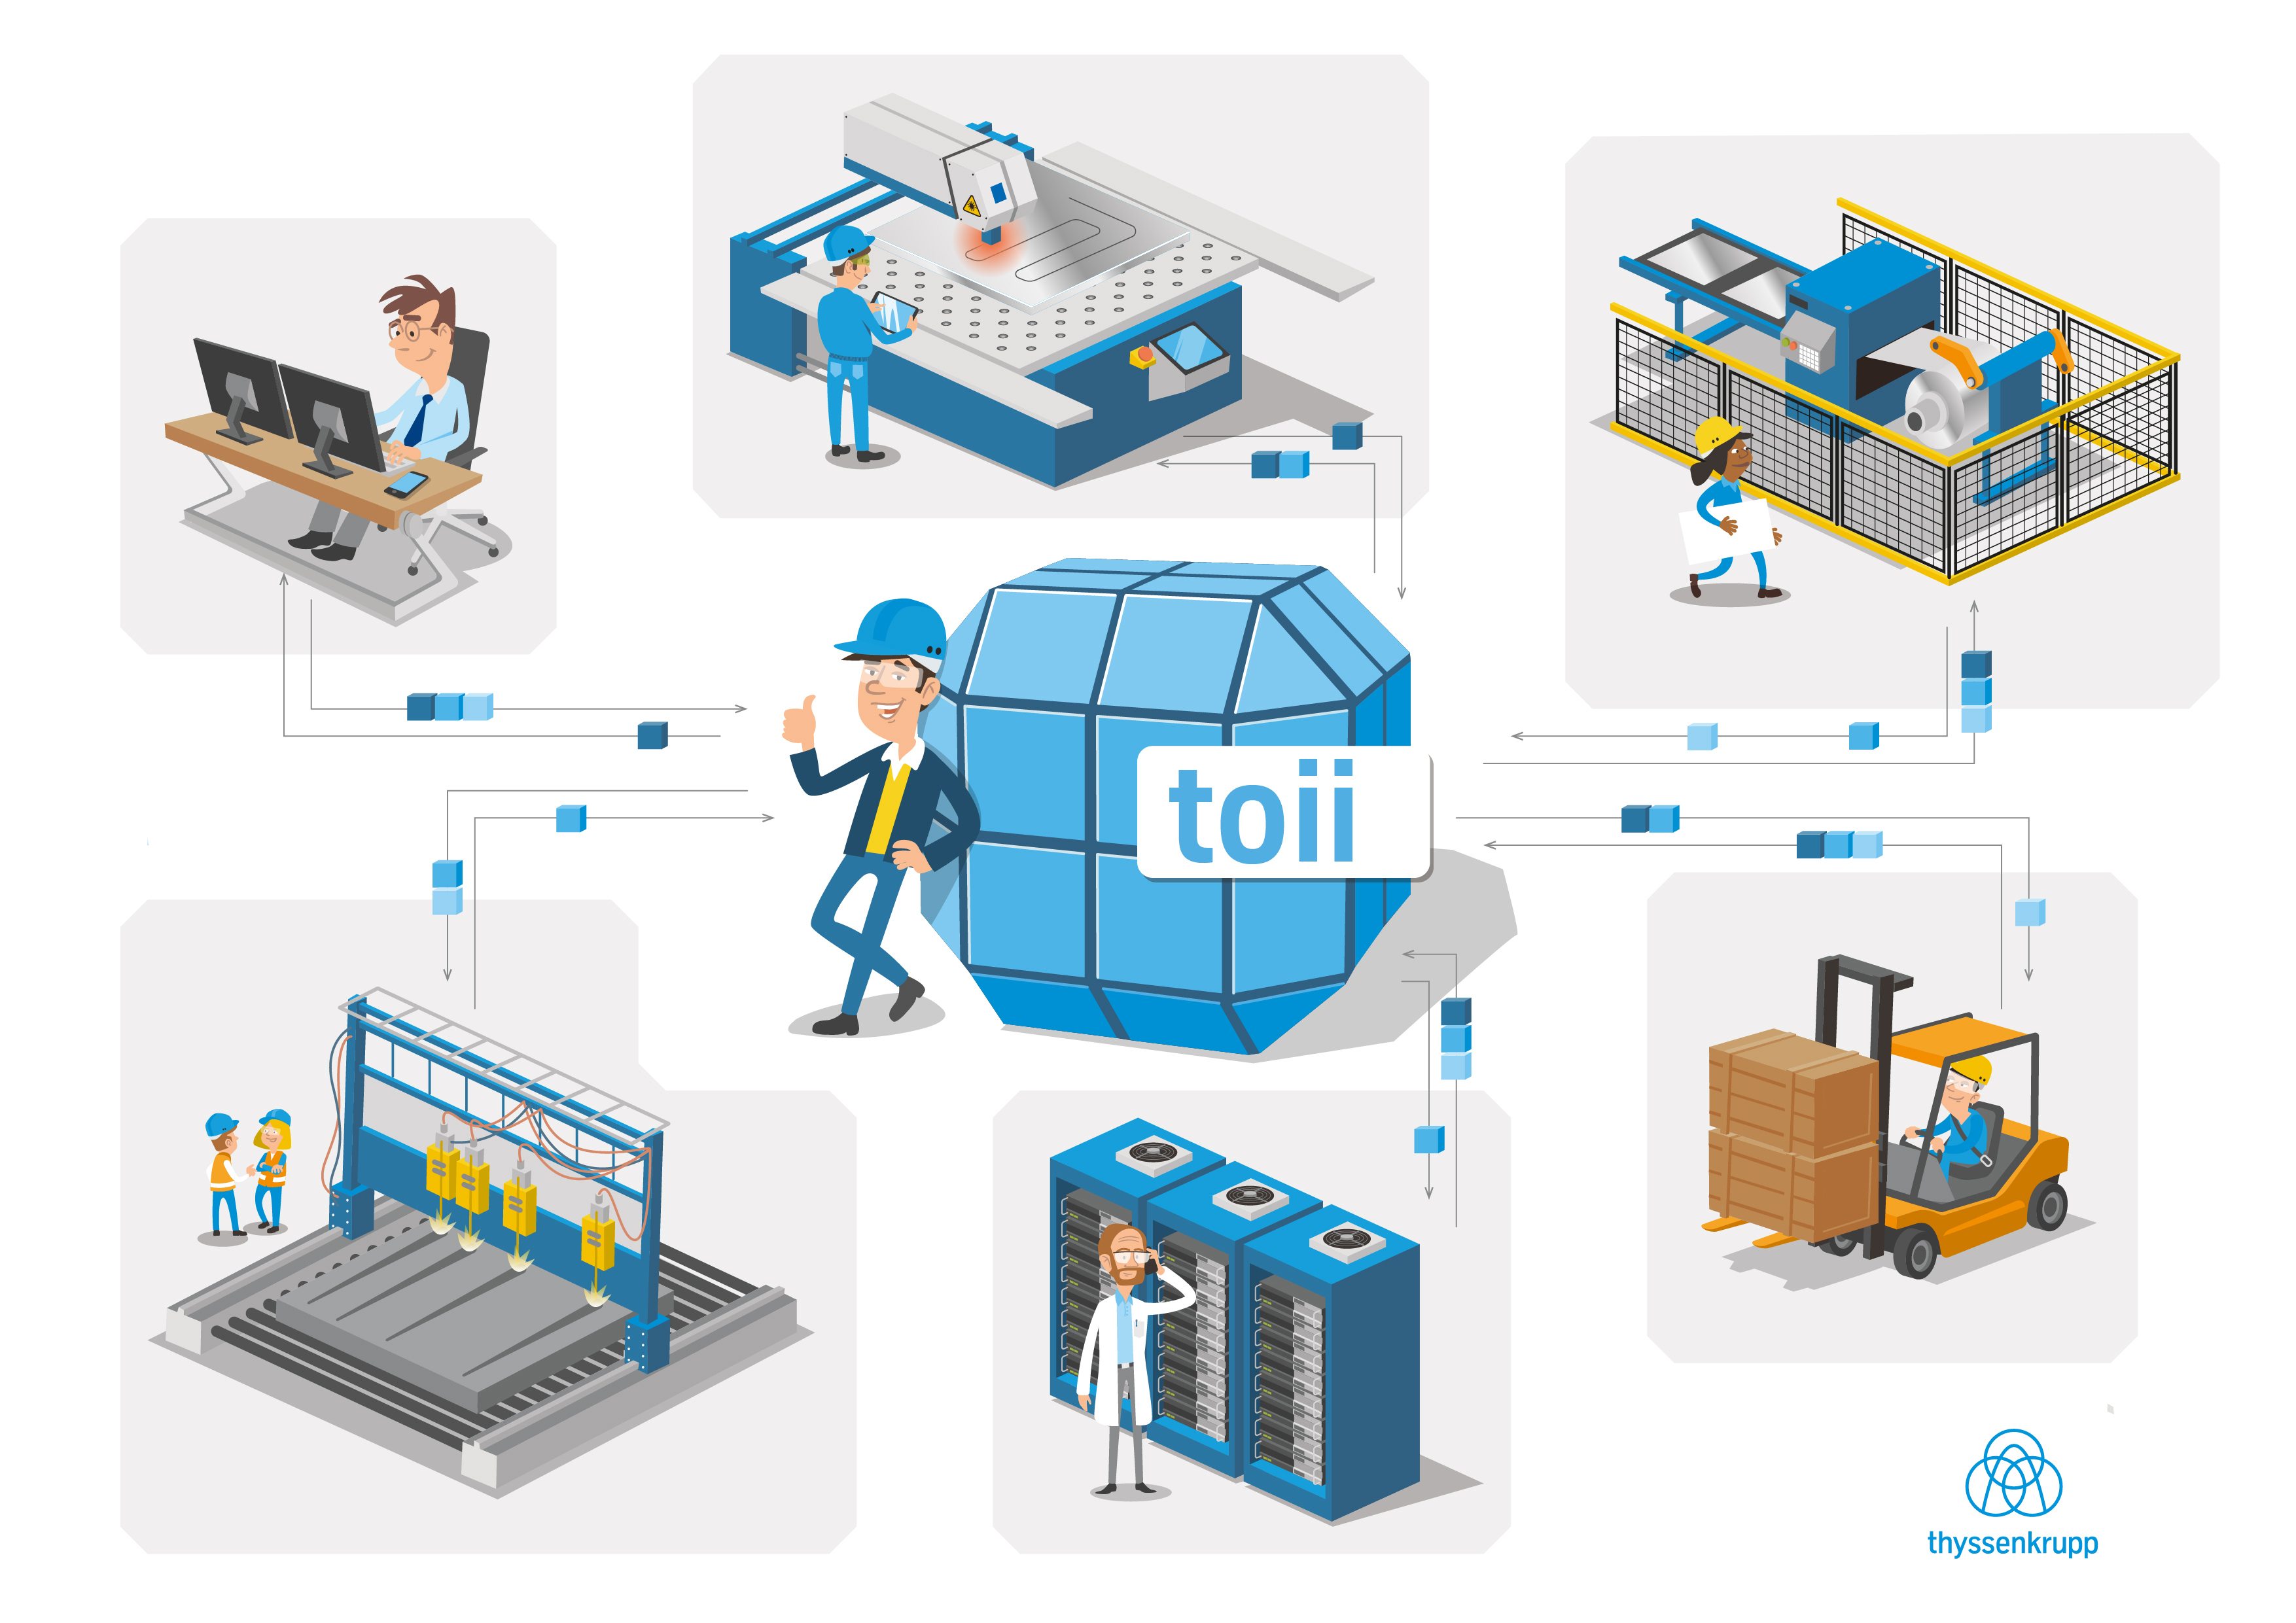 An illustration of ThyssenKrupp's new IIoT platform, which it calls toii